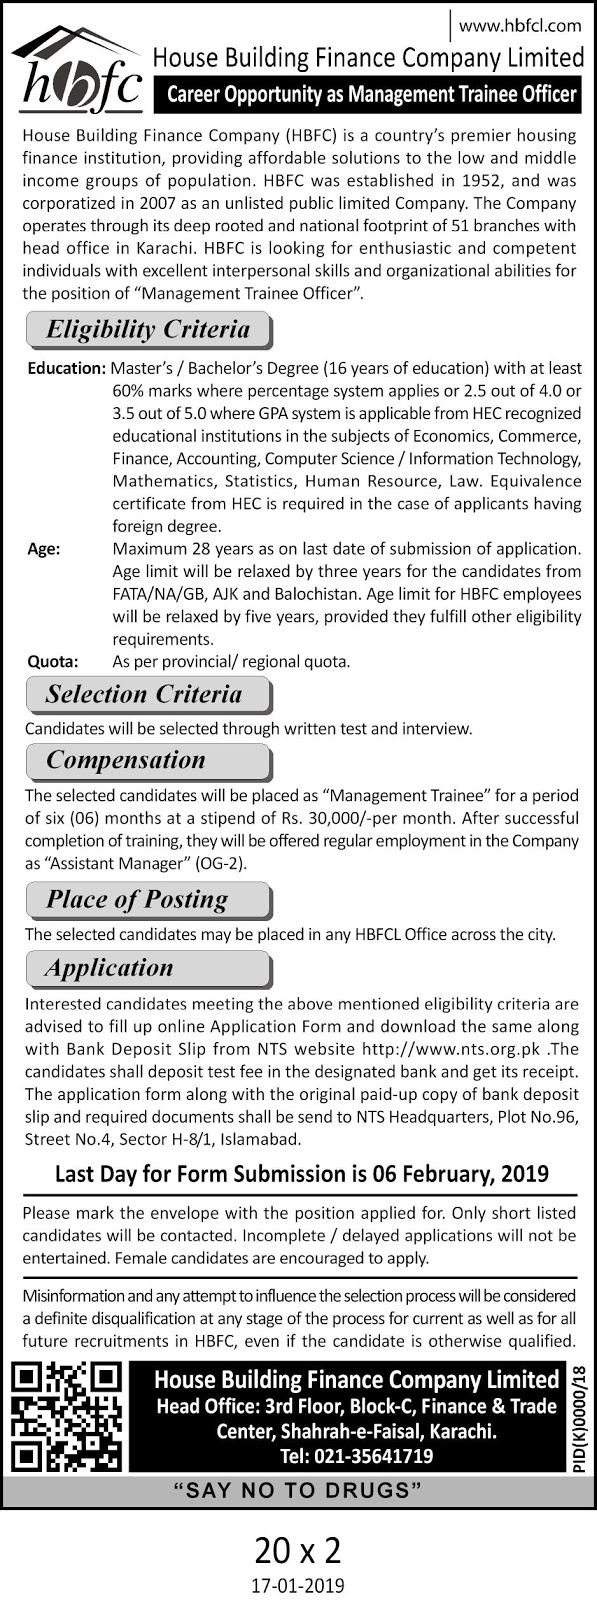 HBFC Management Trainee Program 2019 | Monthly Rs 30,000/- Stipend | Online Apply